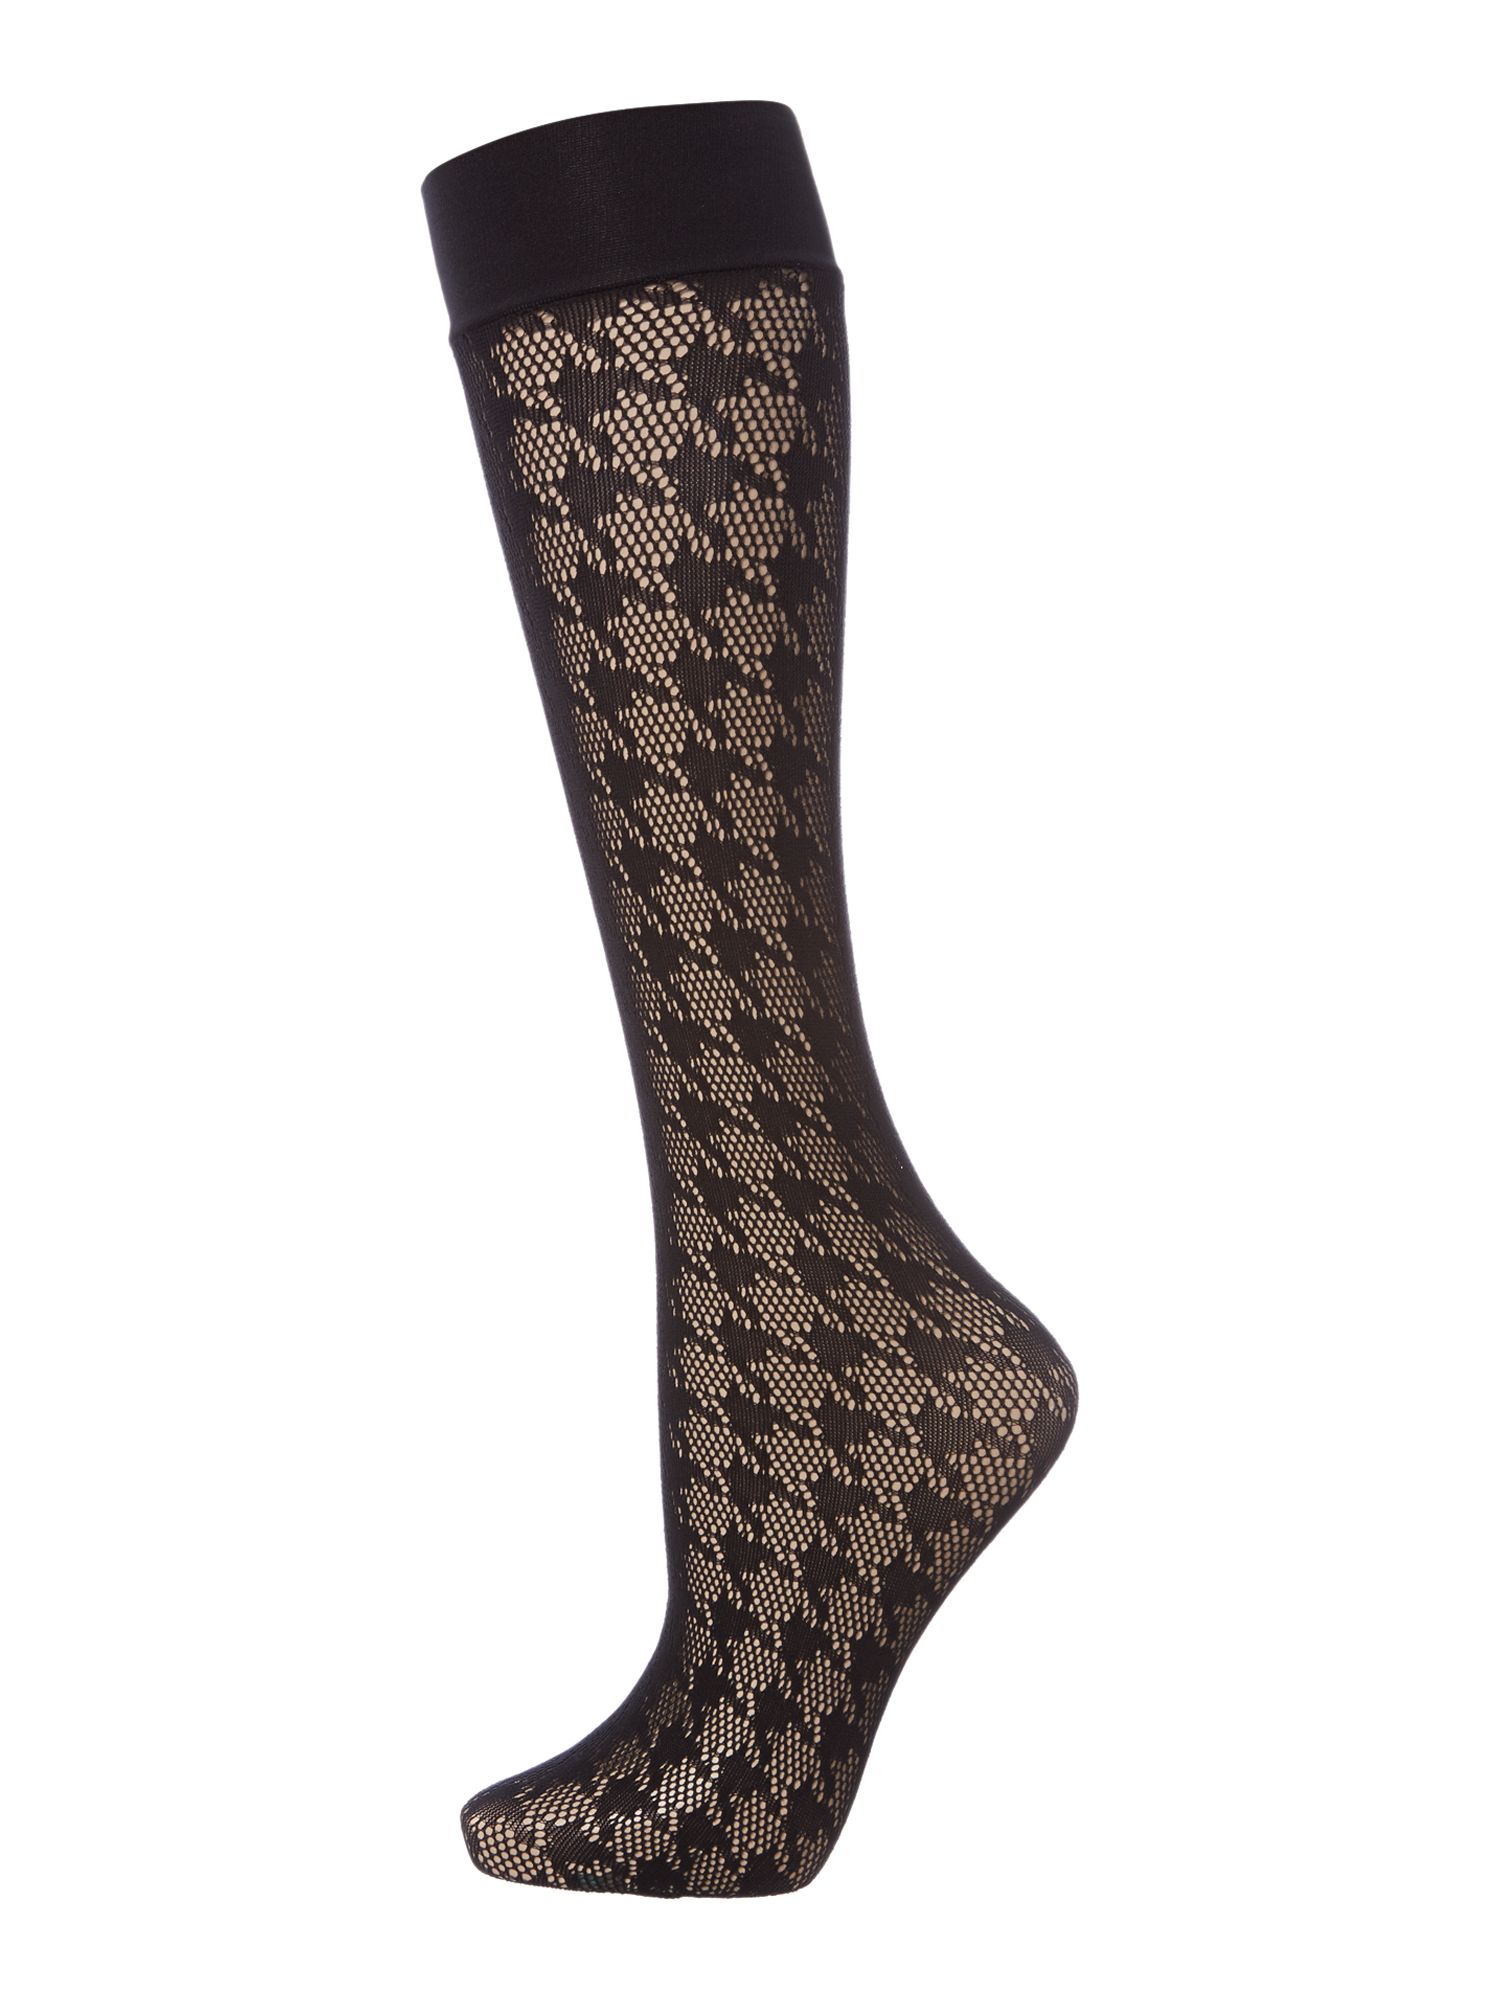 Pascale knee highs